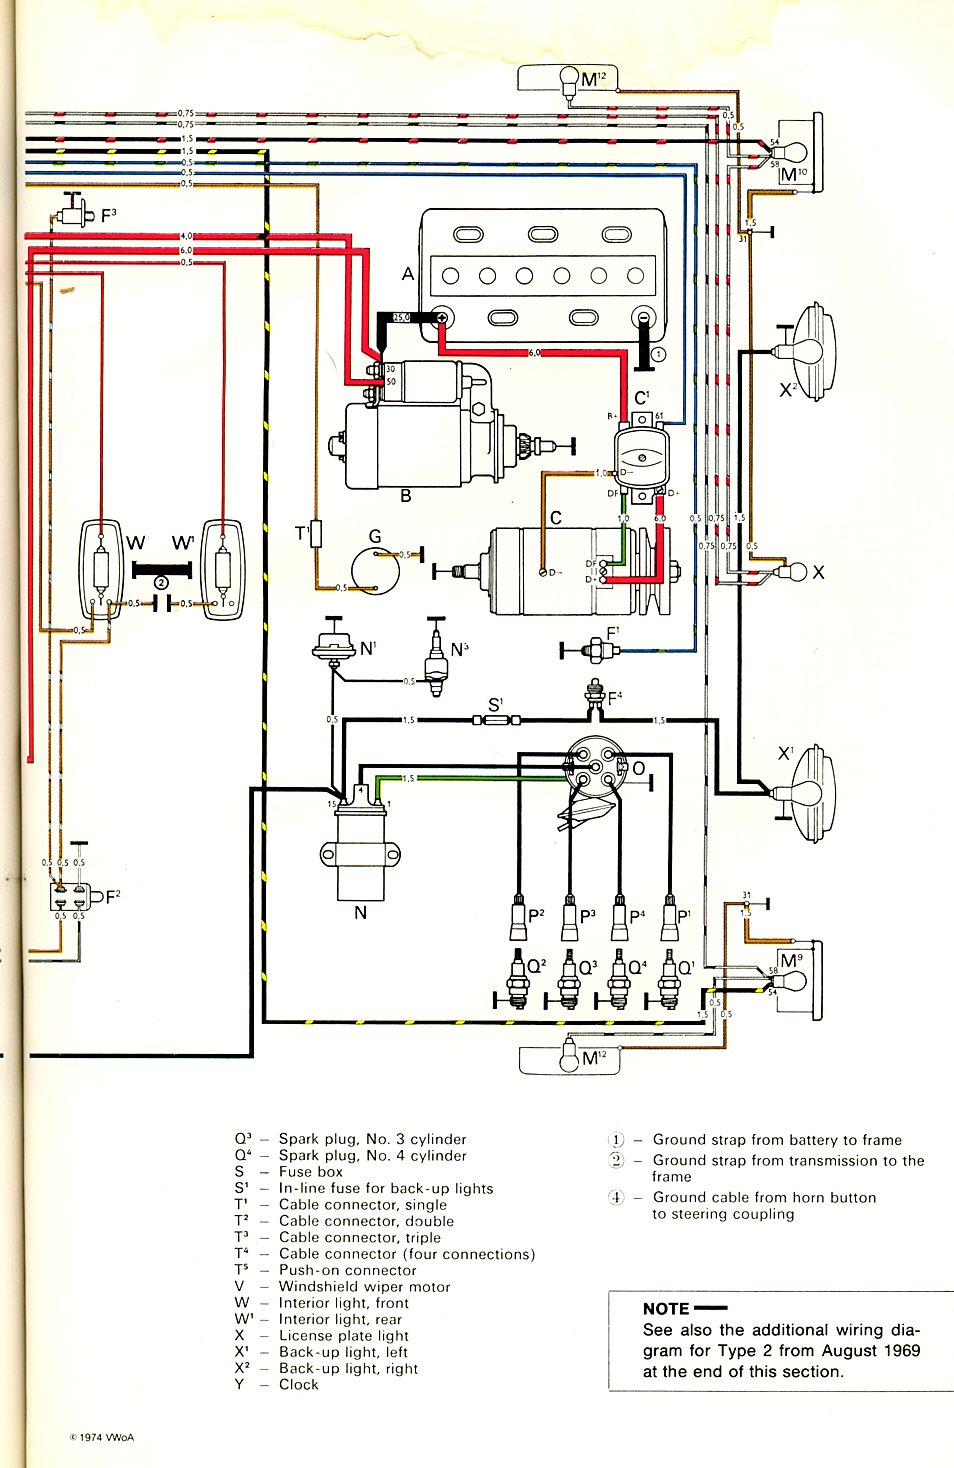 baybus_70b thesamba com type 2 wiring diagrams 1972 beetle wiring diagram at letsshop.co